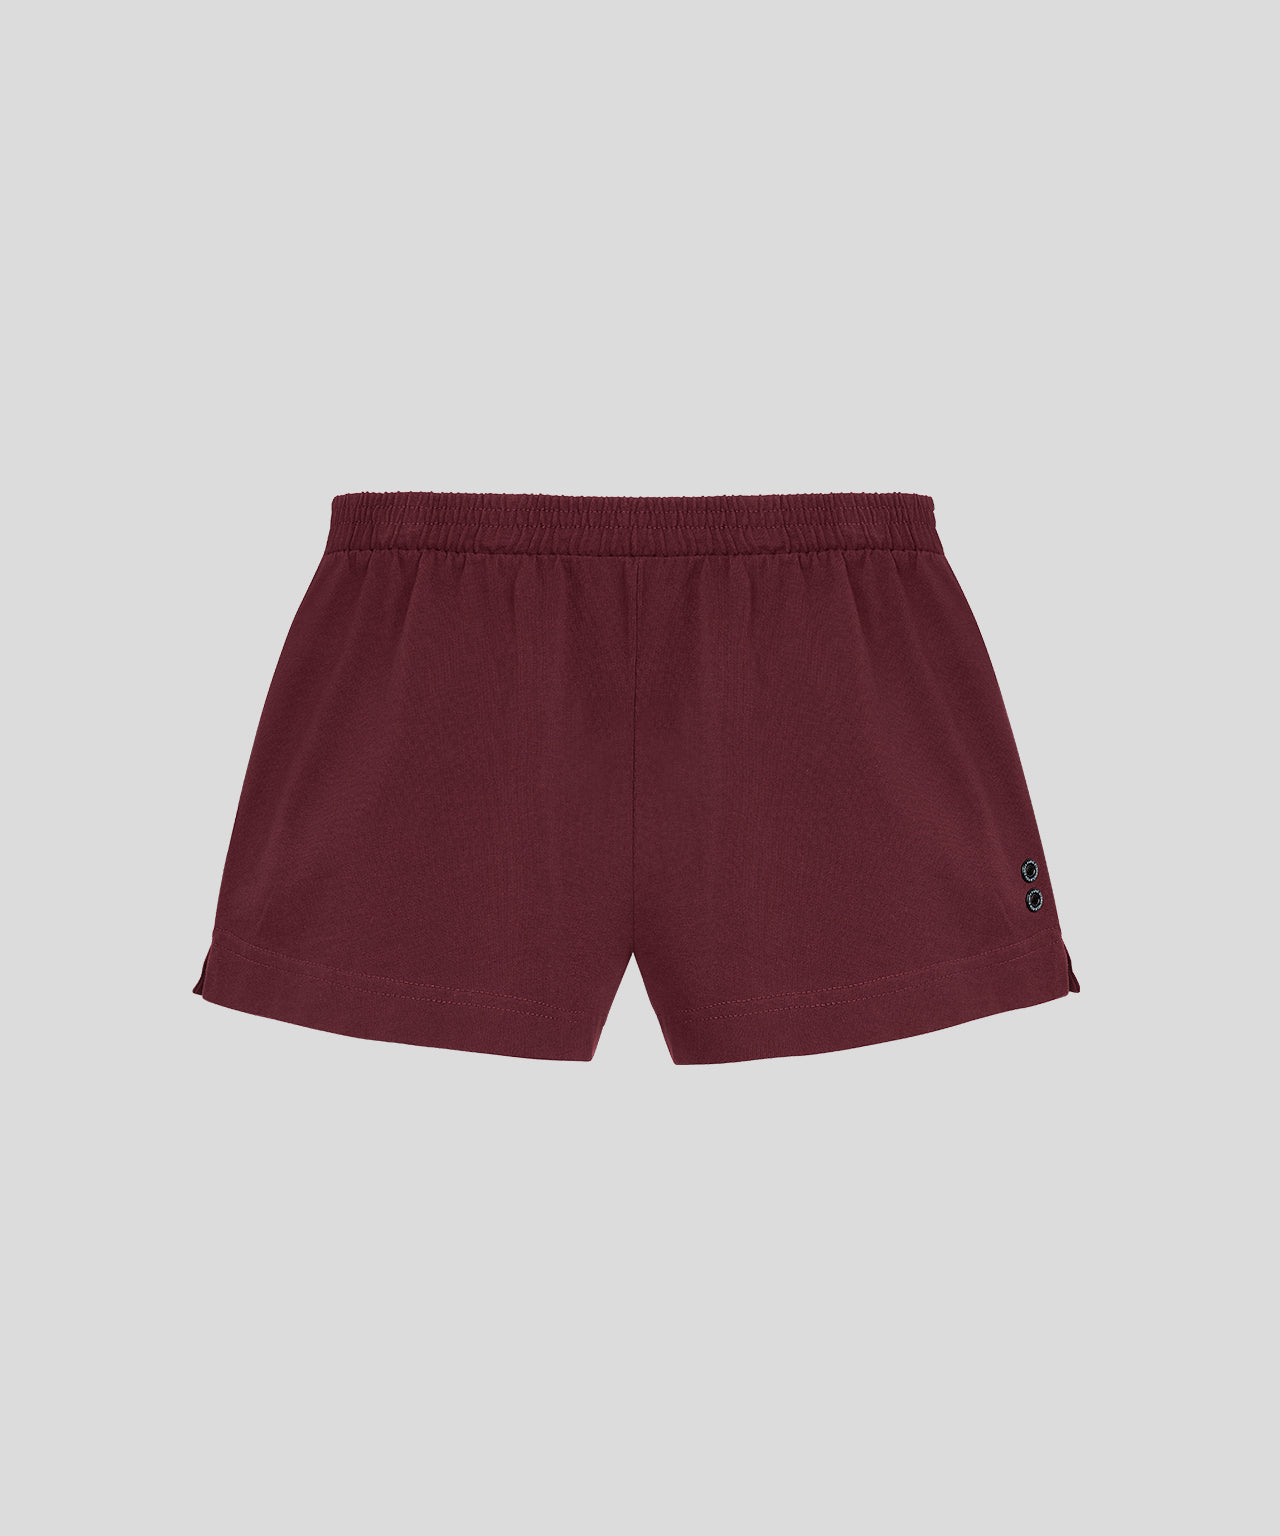 Home Shorts His For Her - burgundy red